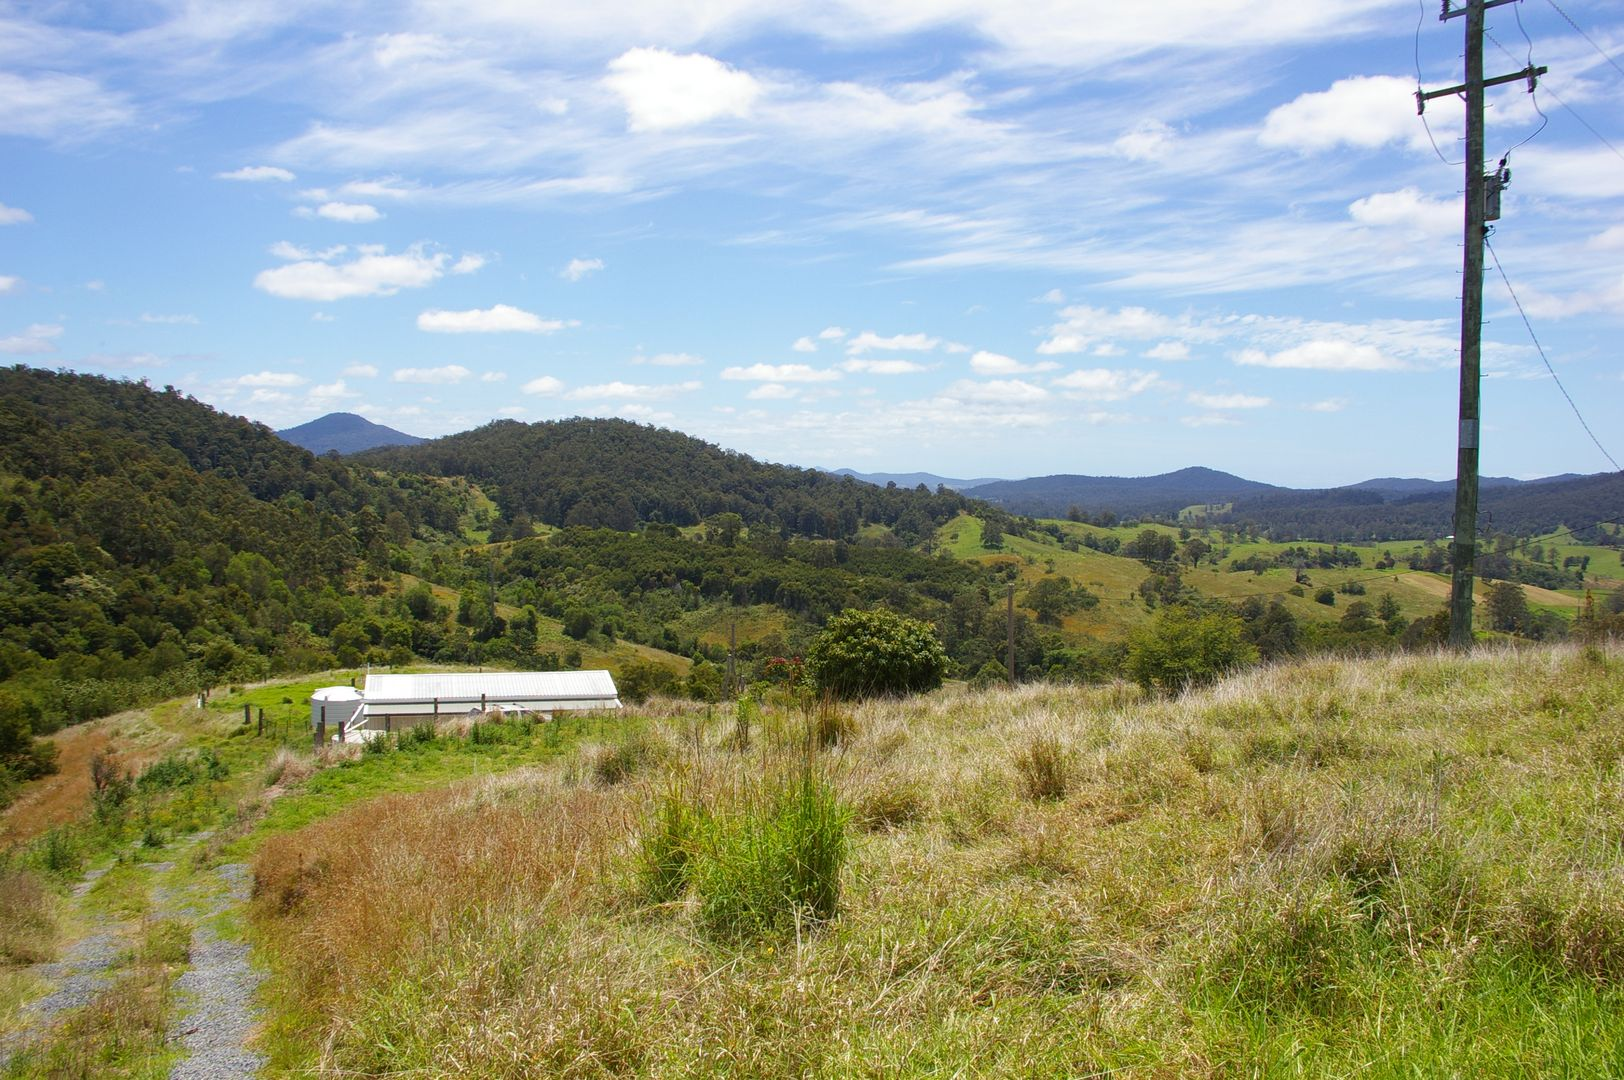 Lot 1,2,3/802 Bakers Creek Rd, Taylors Arm NSW 2447, Image 1